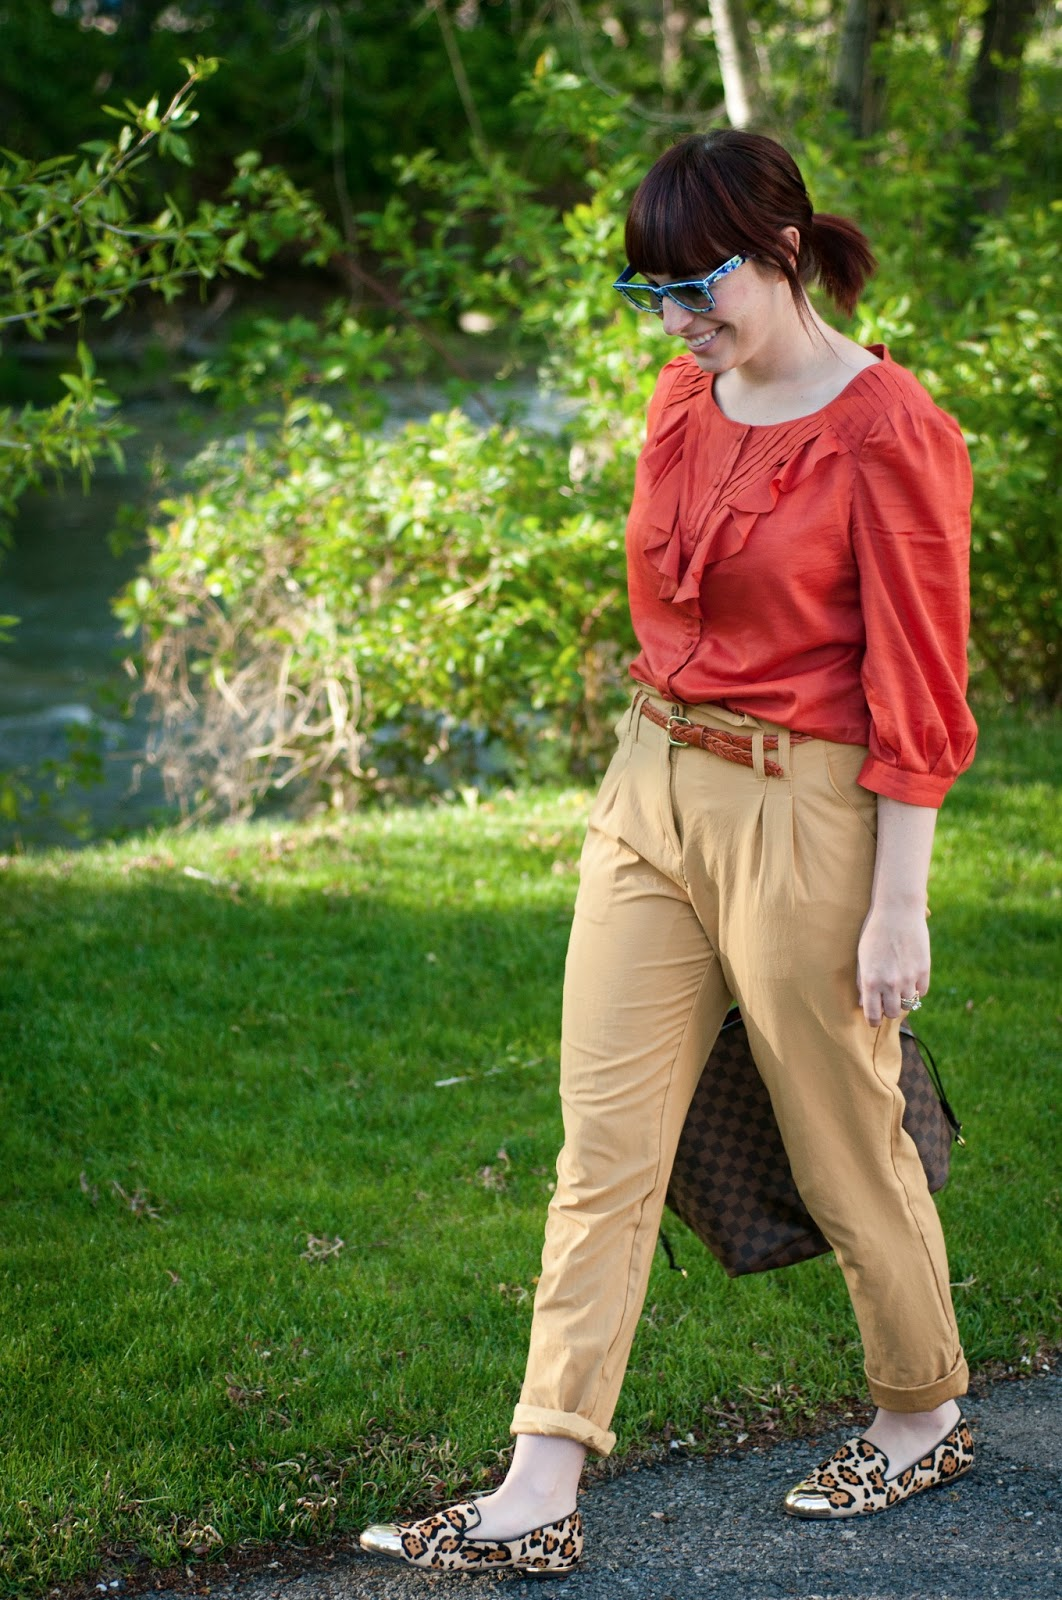 fashion blog, fashion blogger, style blog, style blogger, mens fashion, mens fashion blog, mens style, mens style blog, womens style blog, anthropologie ootd blog, anthropologie ootd, anthropologie, ootd, mens ootd, womens ootd, maeve, maeve blouse, maeve at anthropologie, high waisted pants, braided belt, oxfords, cheetah shoes, two tone shoes, cheetah flats, steven by steve madden, steve madden shoes, crocodile belt, topman slacks, topman, h and m, checkered shirt, louis vuitton, floral rayban, rayban, orange, burnt orange, yellow